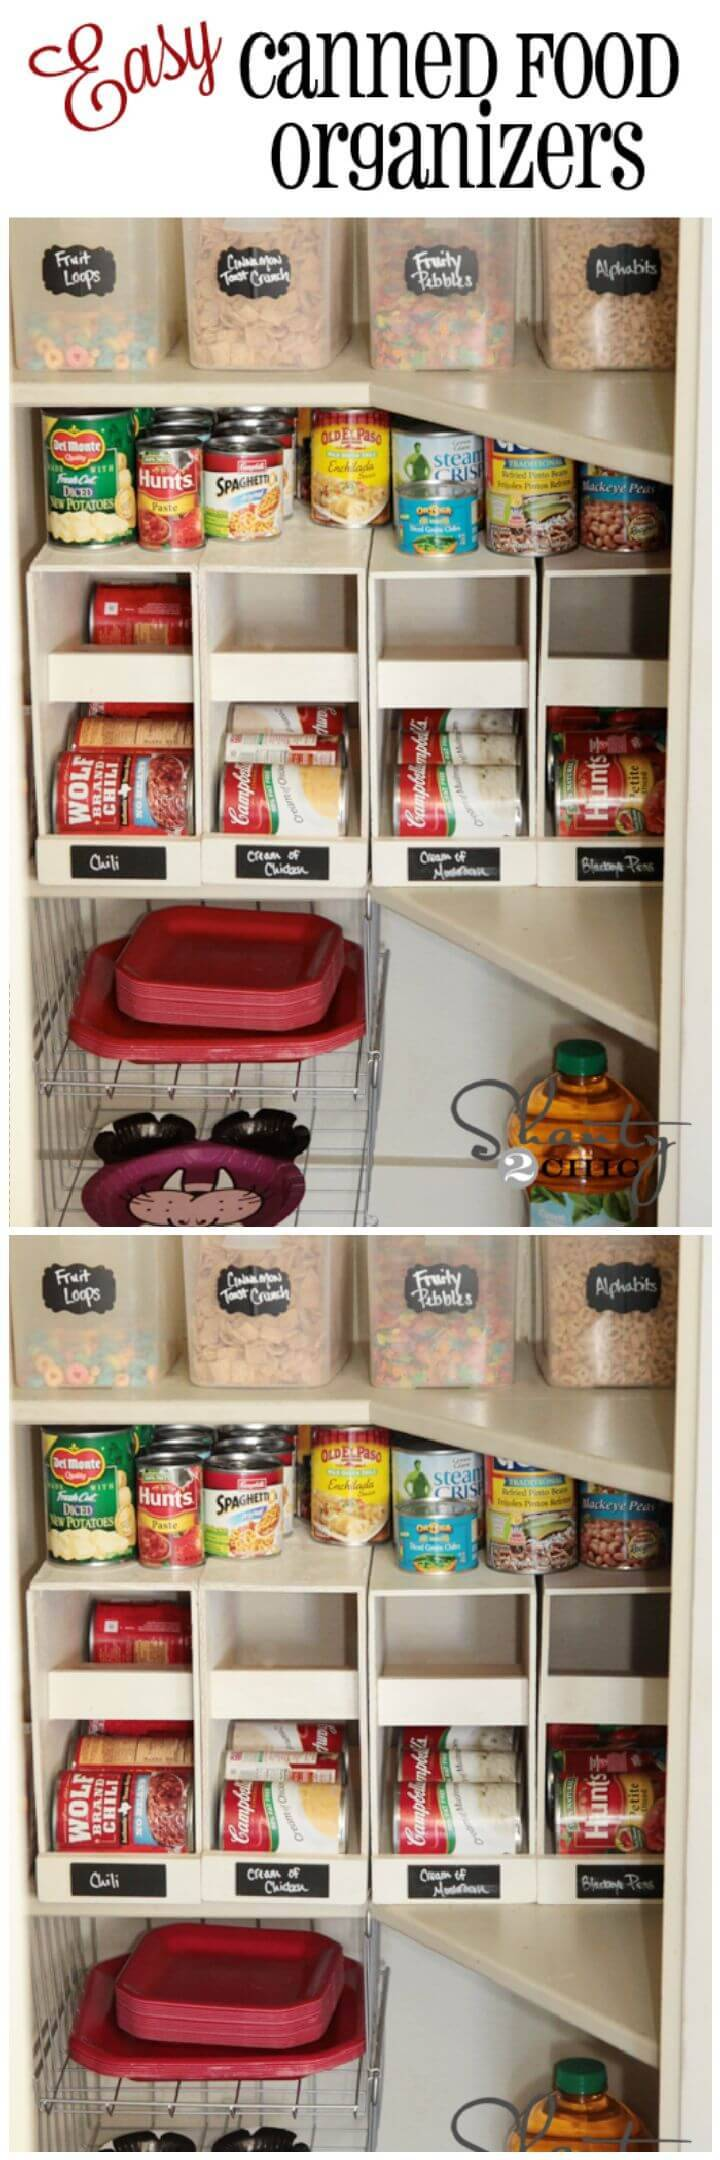 Stackable Canned Food Organizers